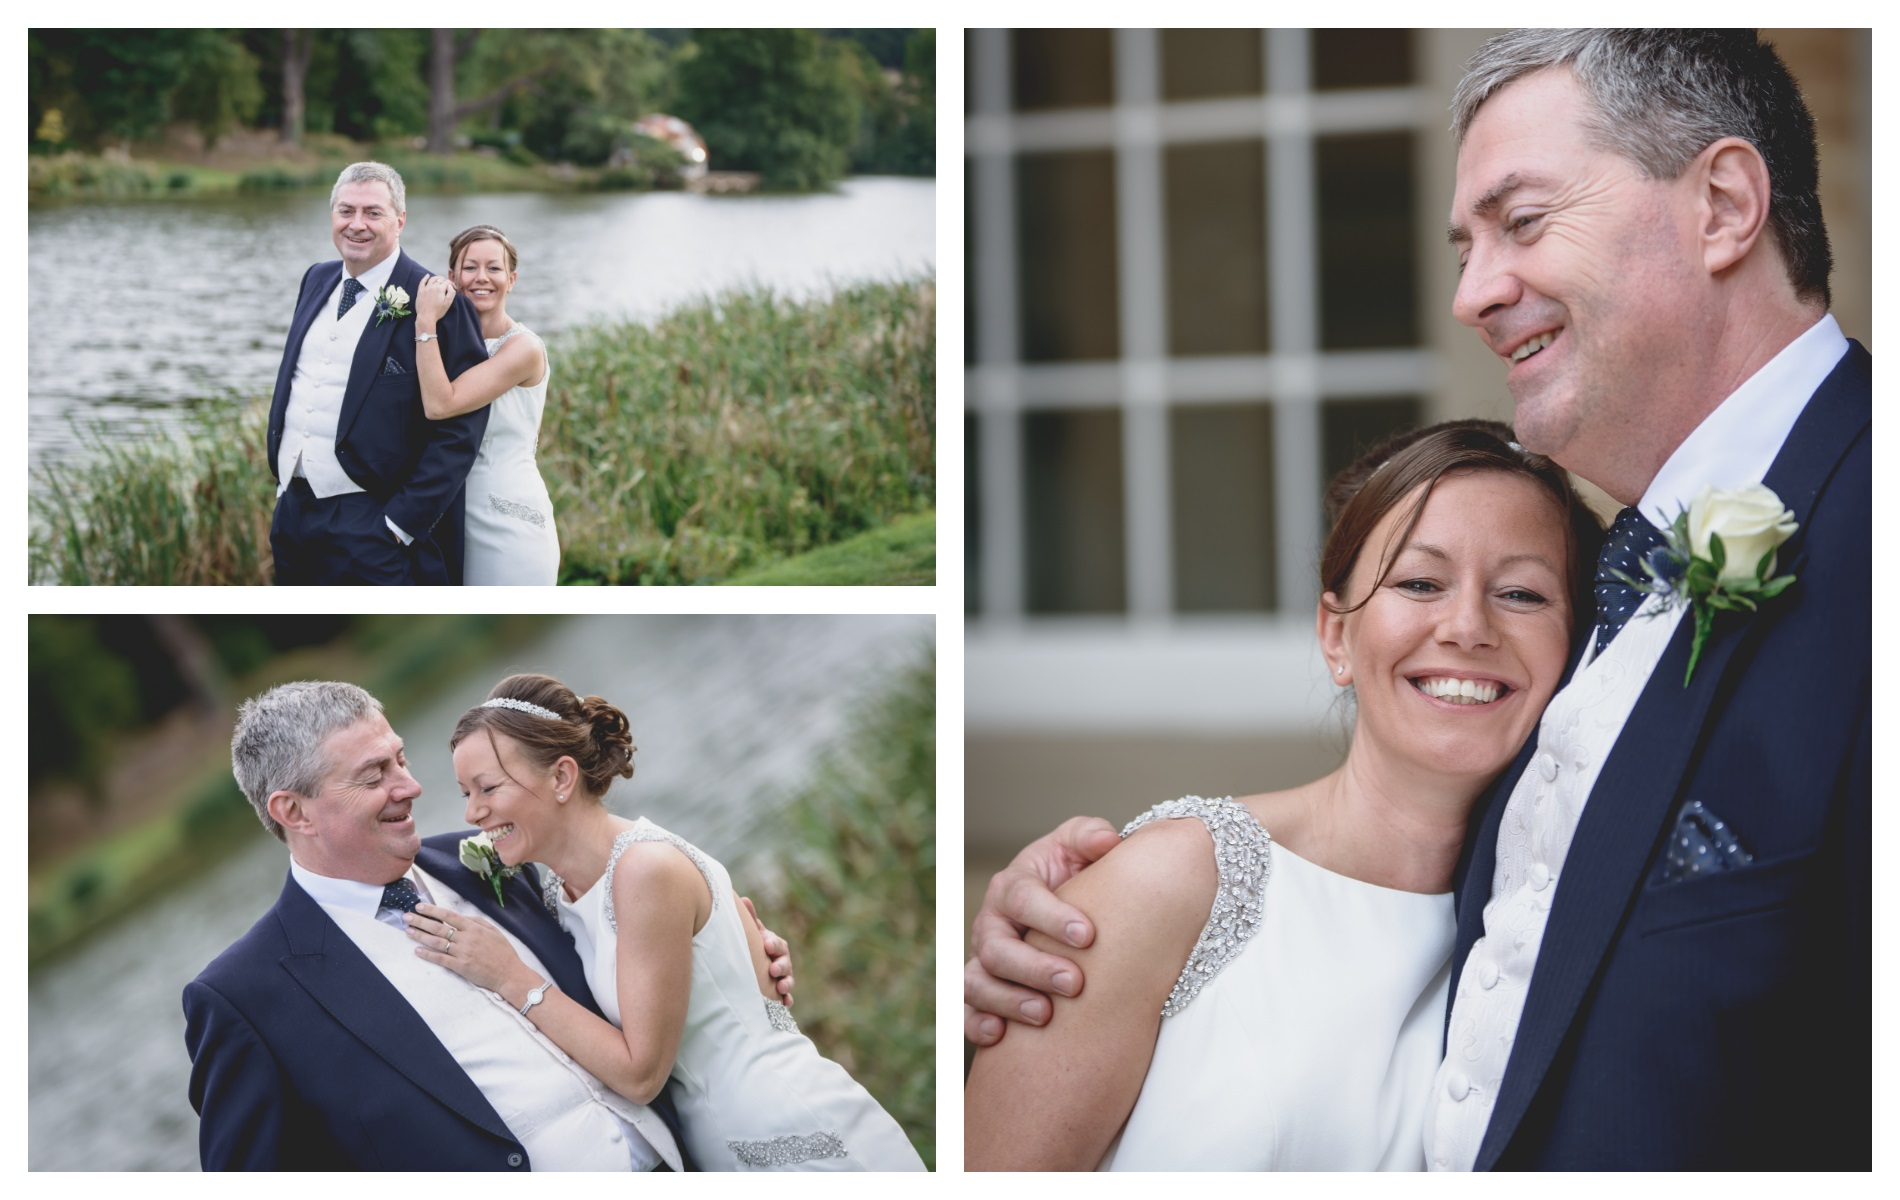 Compton Verney Wedding Photography by Chris Fossey Photography Claire 12